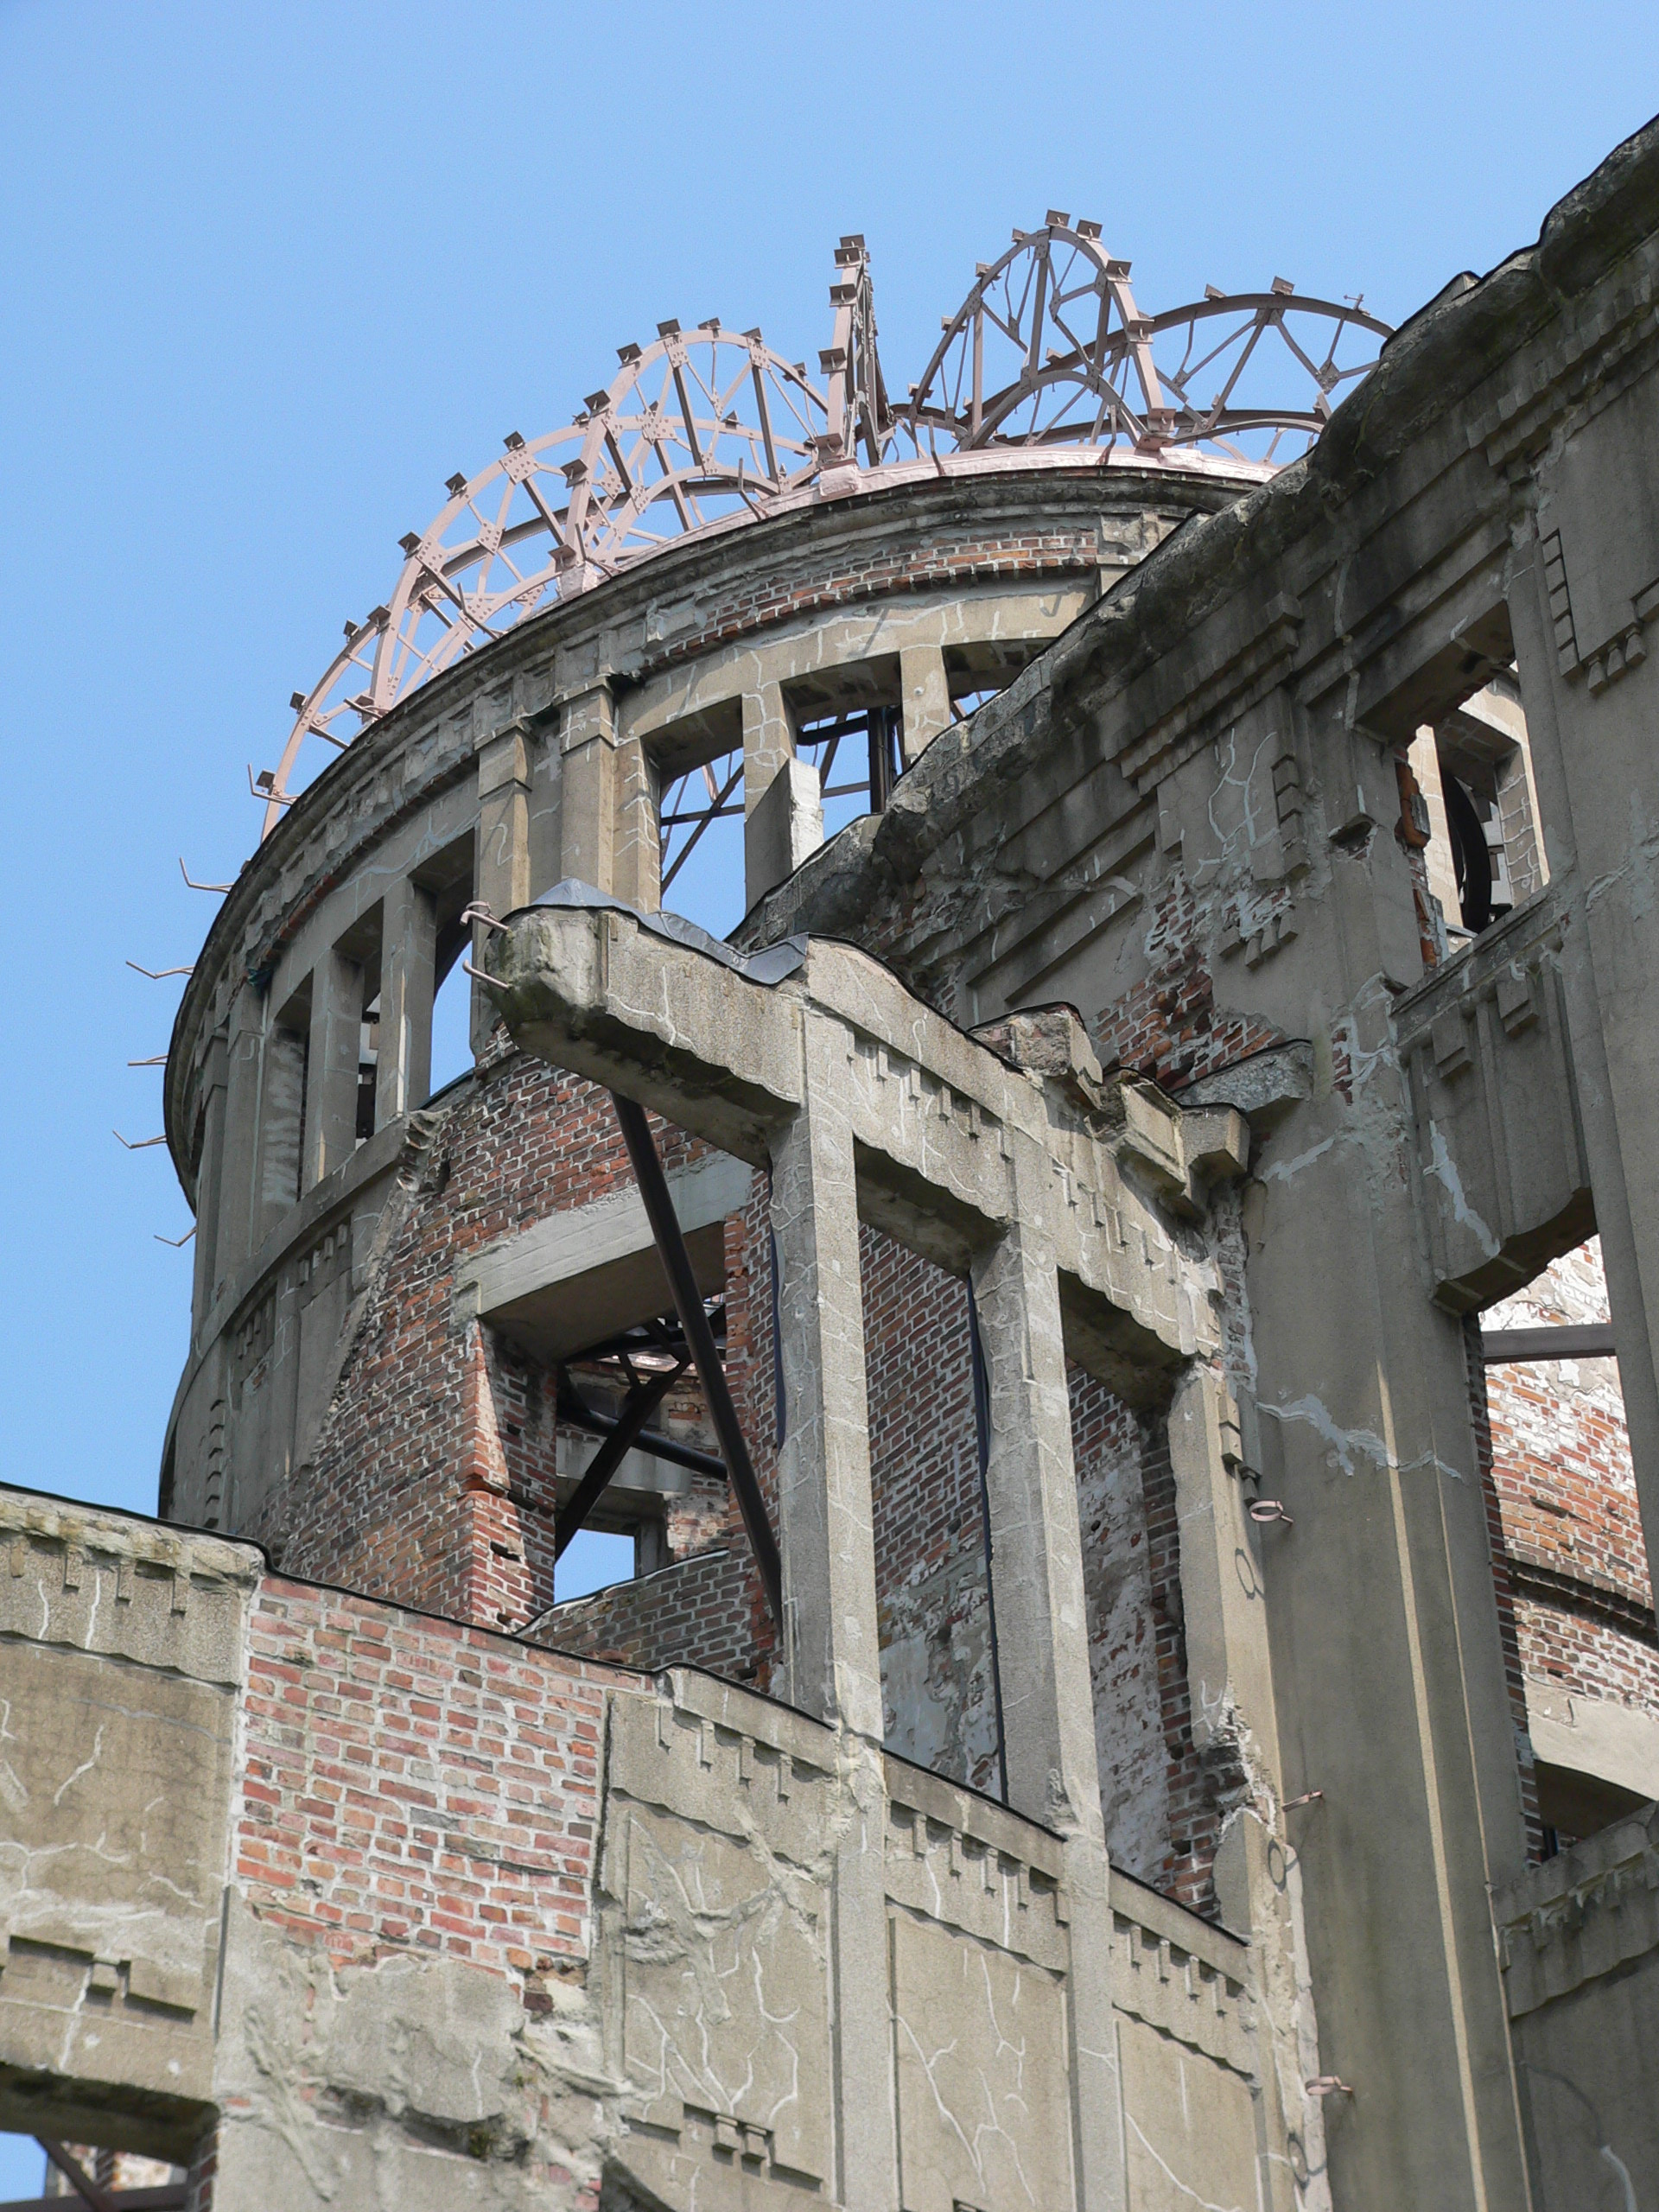 Hiroshima Atomic Bomb Dome, Park, World, Weapon, Unesco, HQ Photo